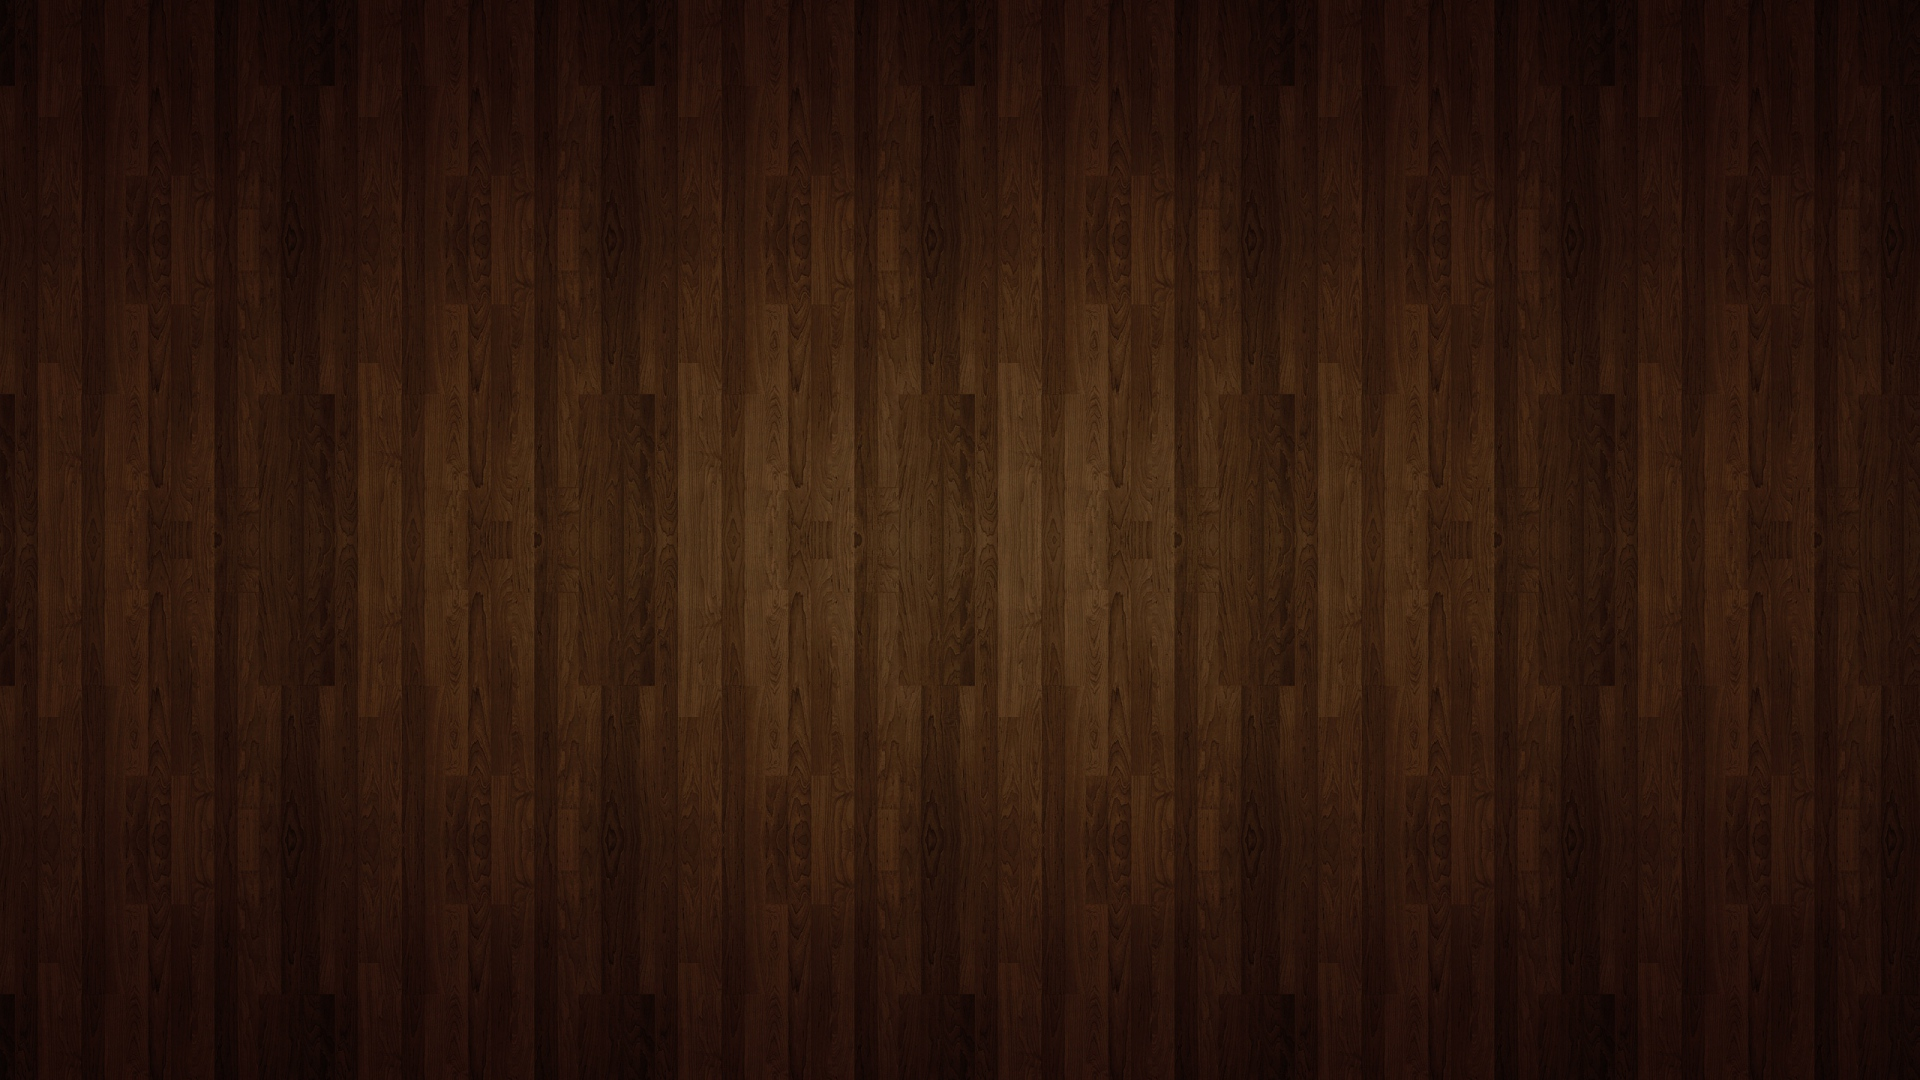 Download Wallpaper 1920x1080 parquet, wood, surface, board Full HD ...